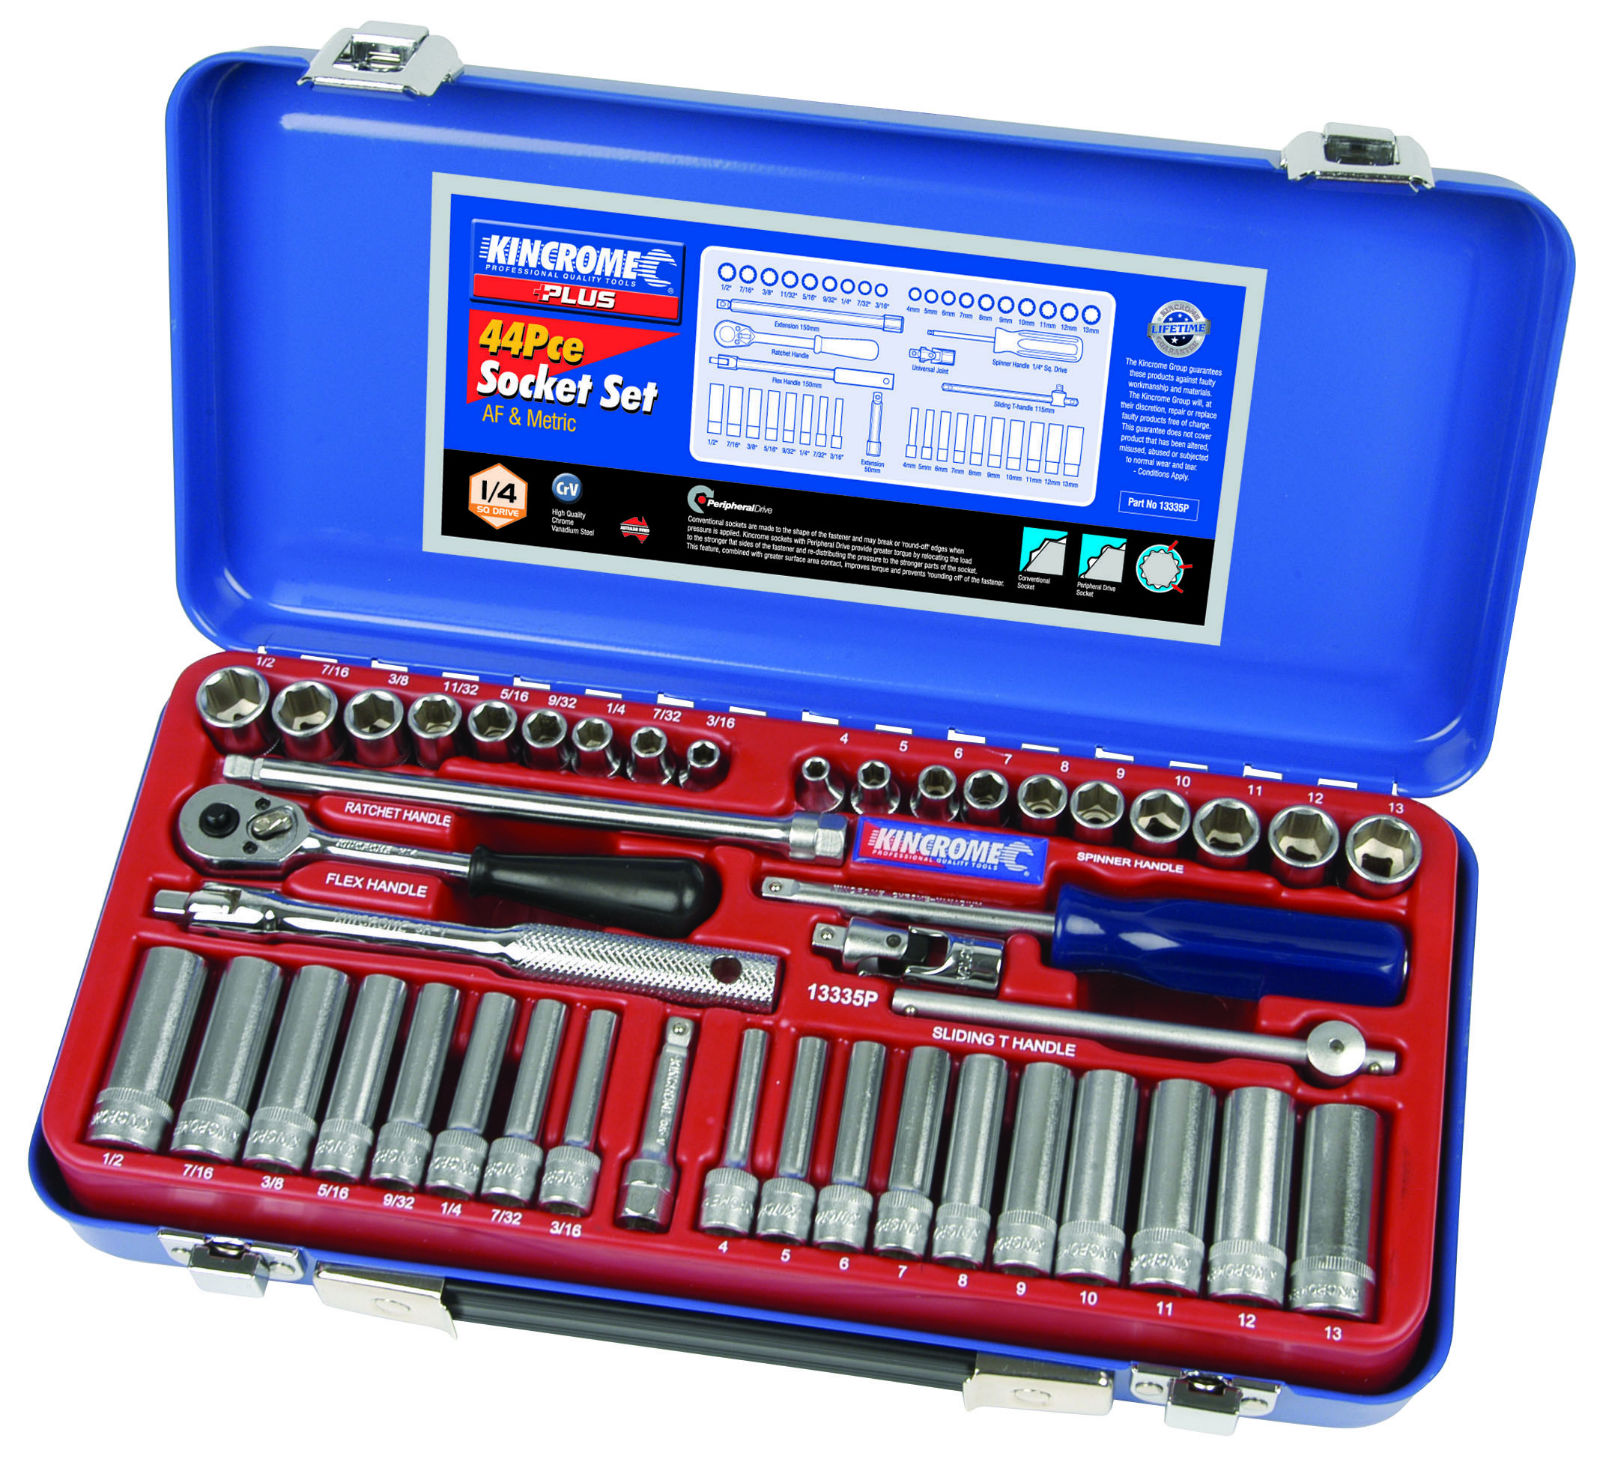 PLUS SOCKET SET 44PC 1/4 AF/M